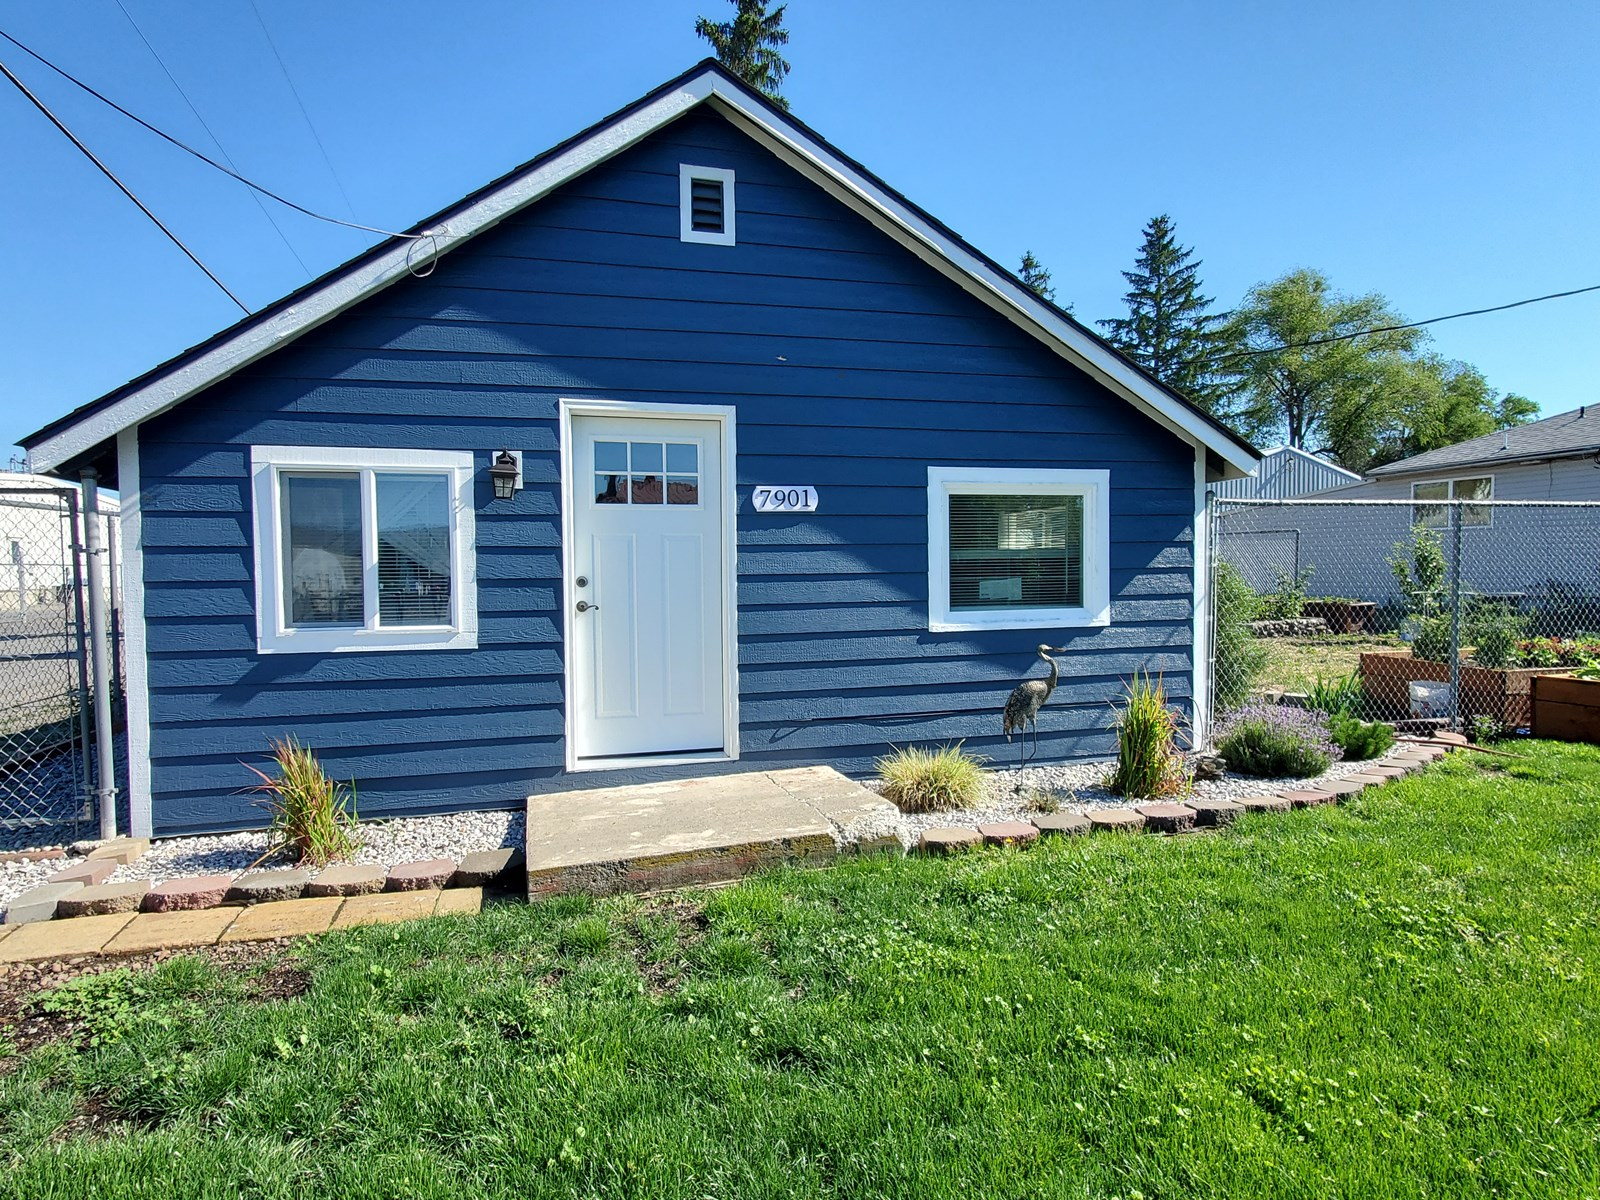 Completely remodeled adorable 2 bed and 1 bath bungalow!